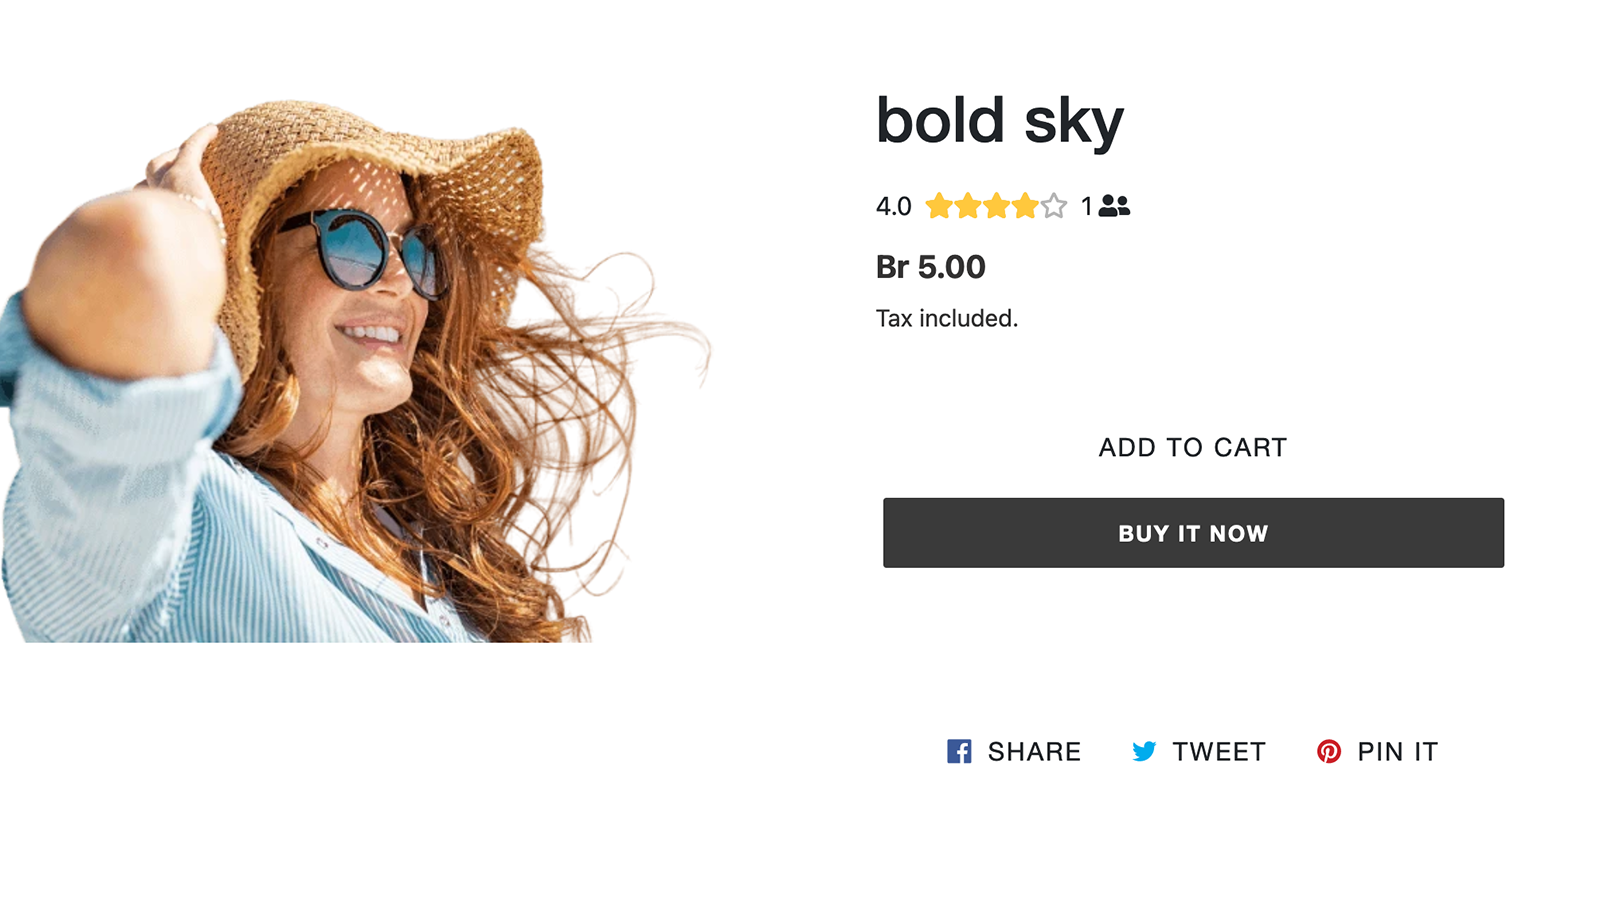 Stars on the product page